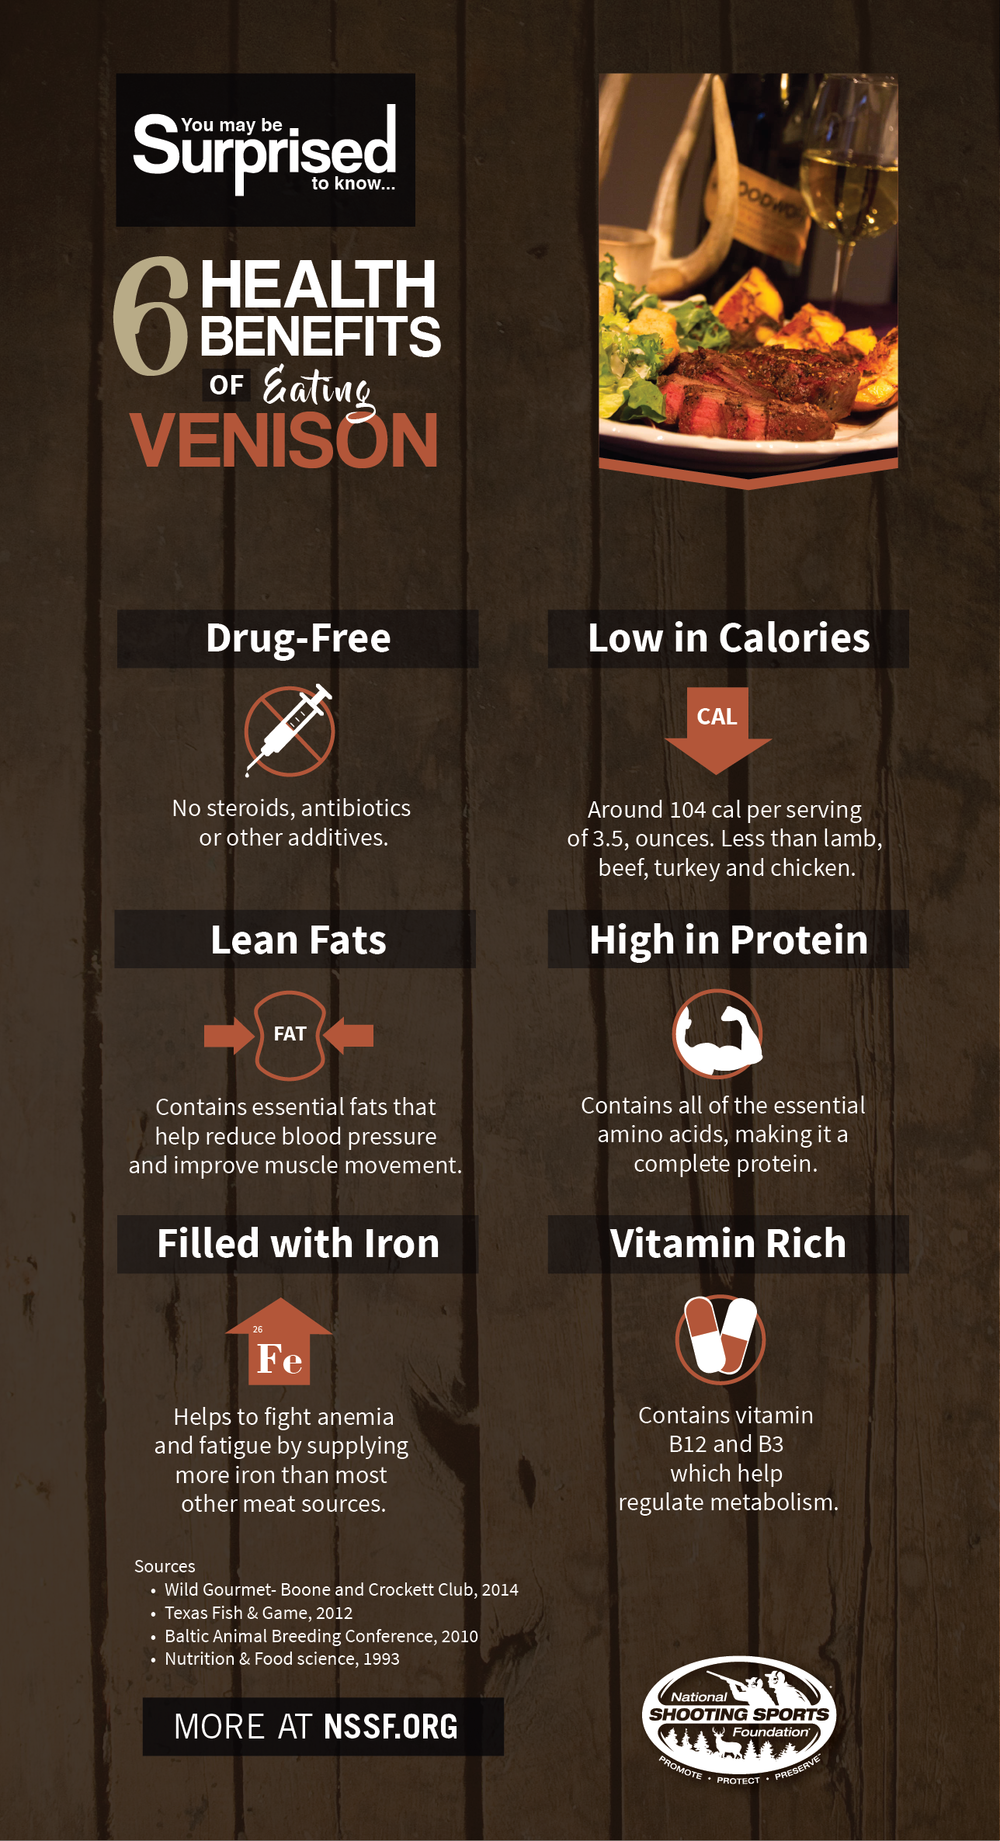 YMBS_Venison_Infographic.png